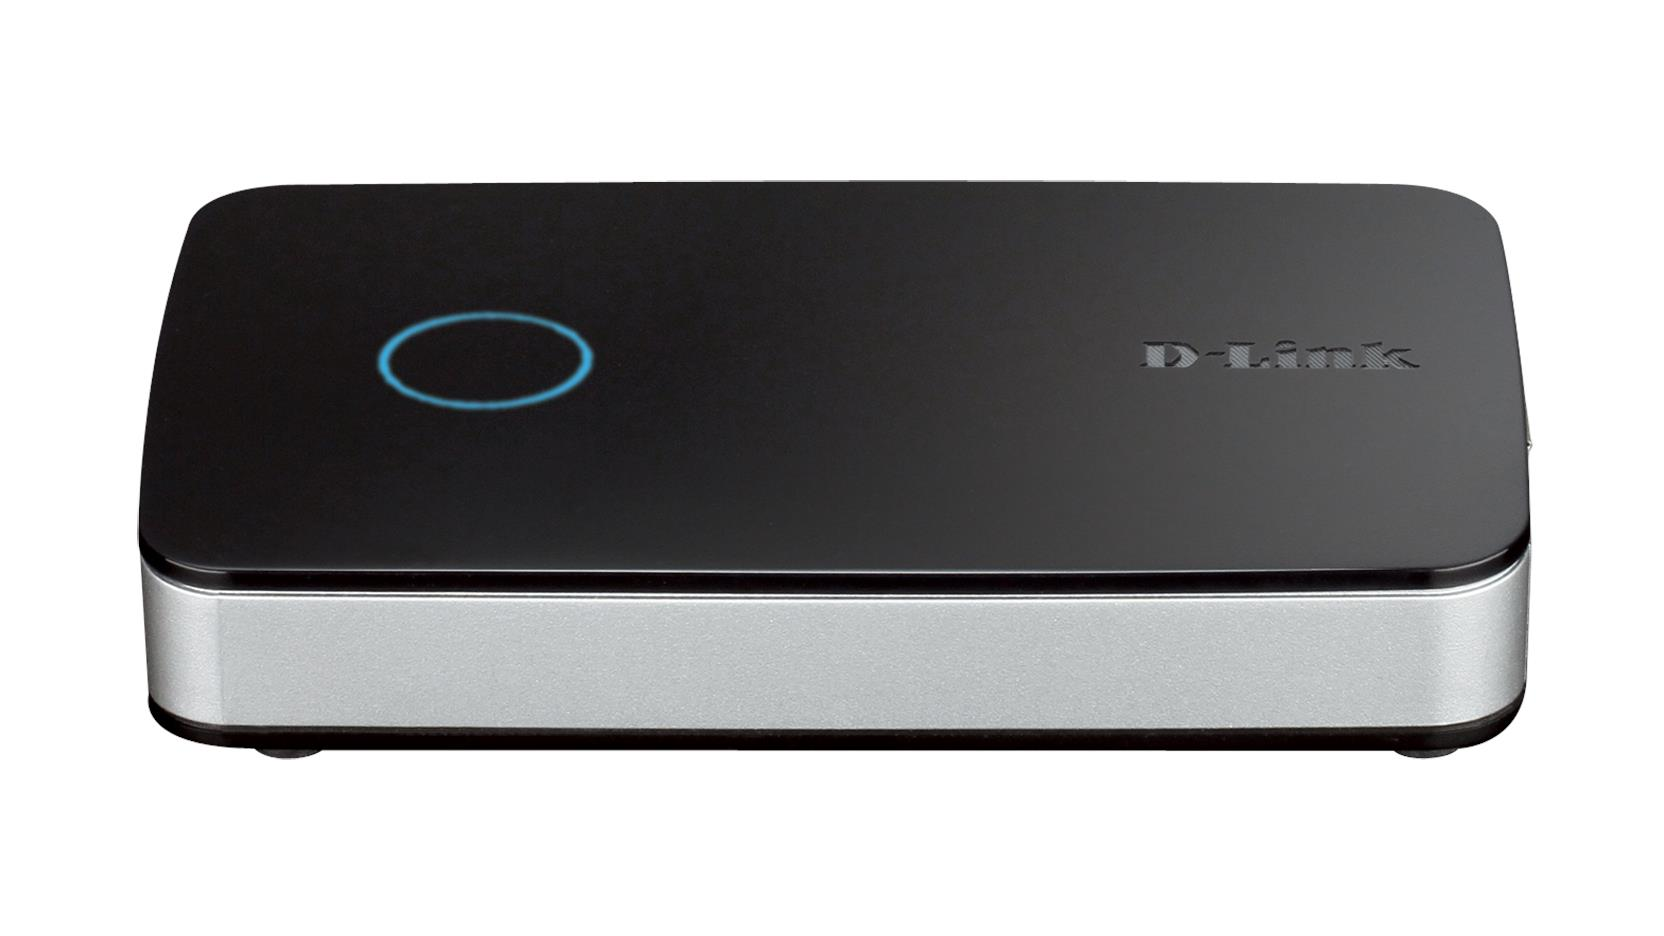 D-LINK NETWORK VIDEO RECORDER NVR ENCLOSURE (DNR-202L)